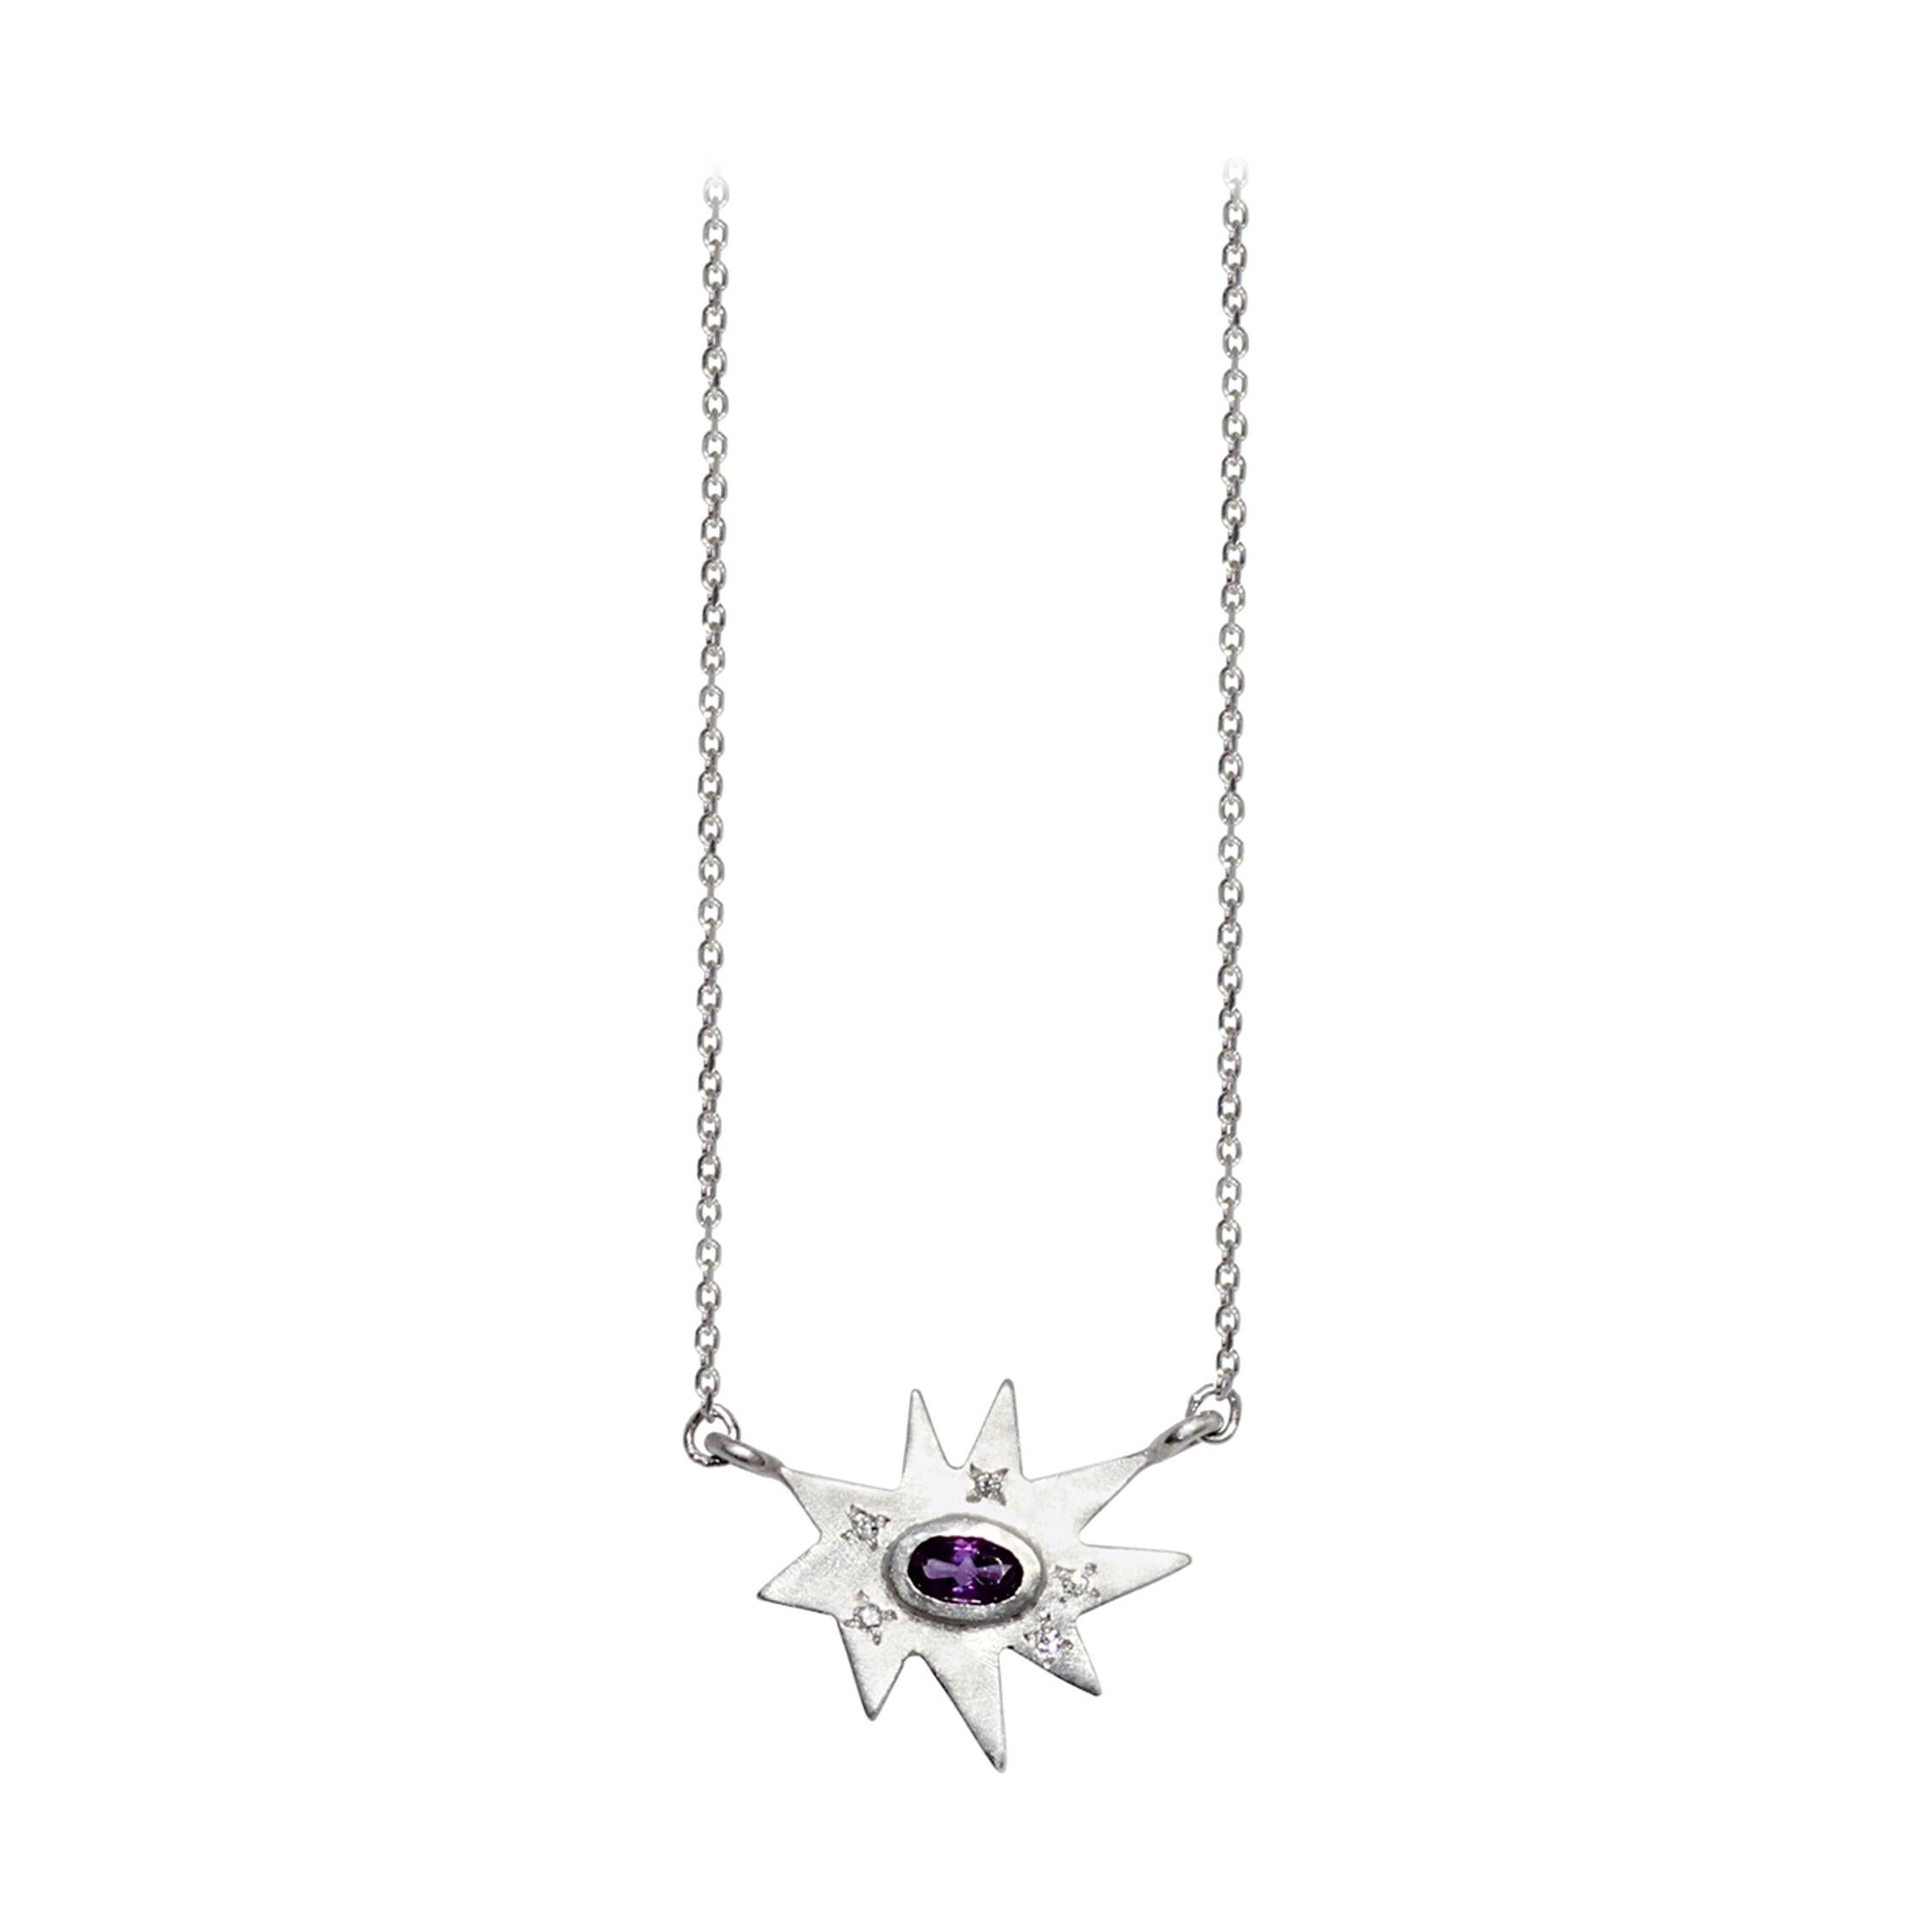 Silver, Amethyst and Diamond Necklace and Earring Set